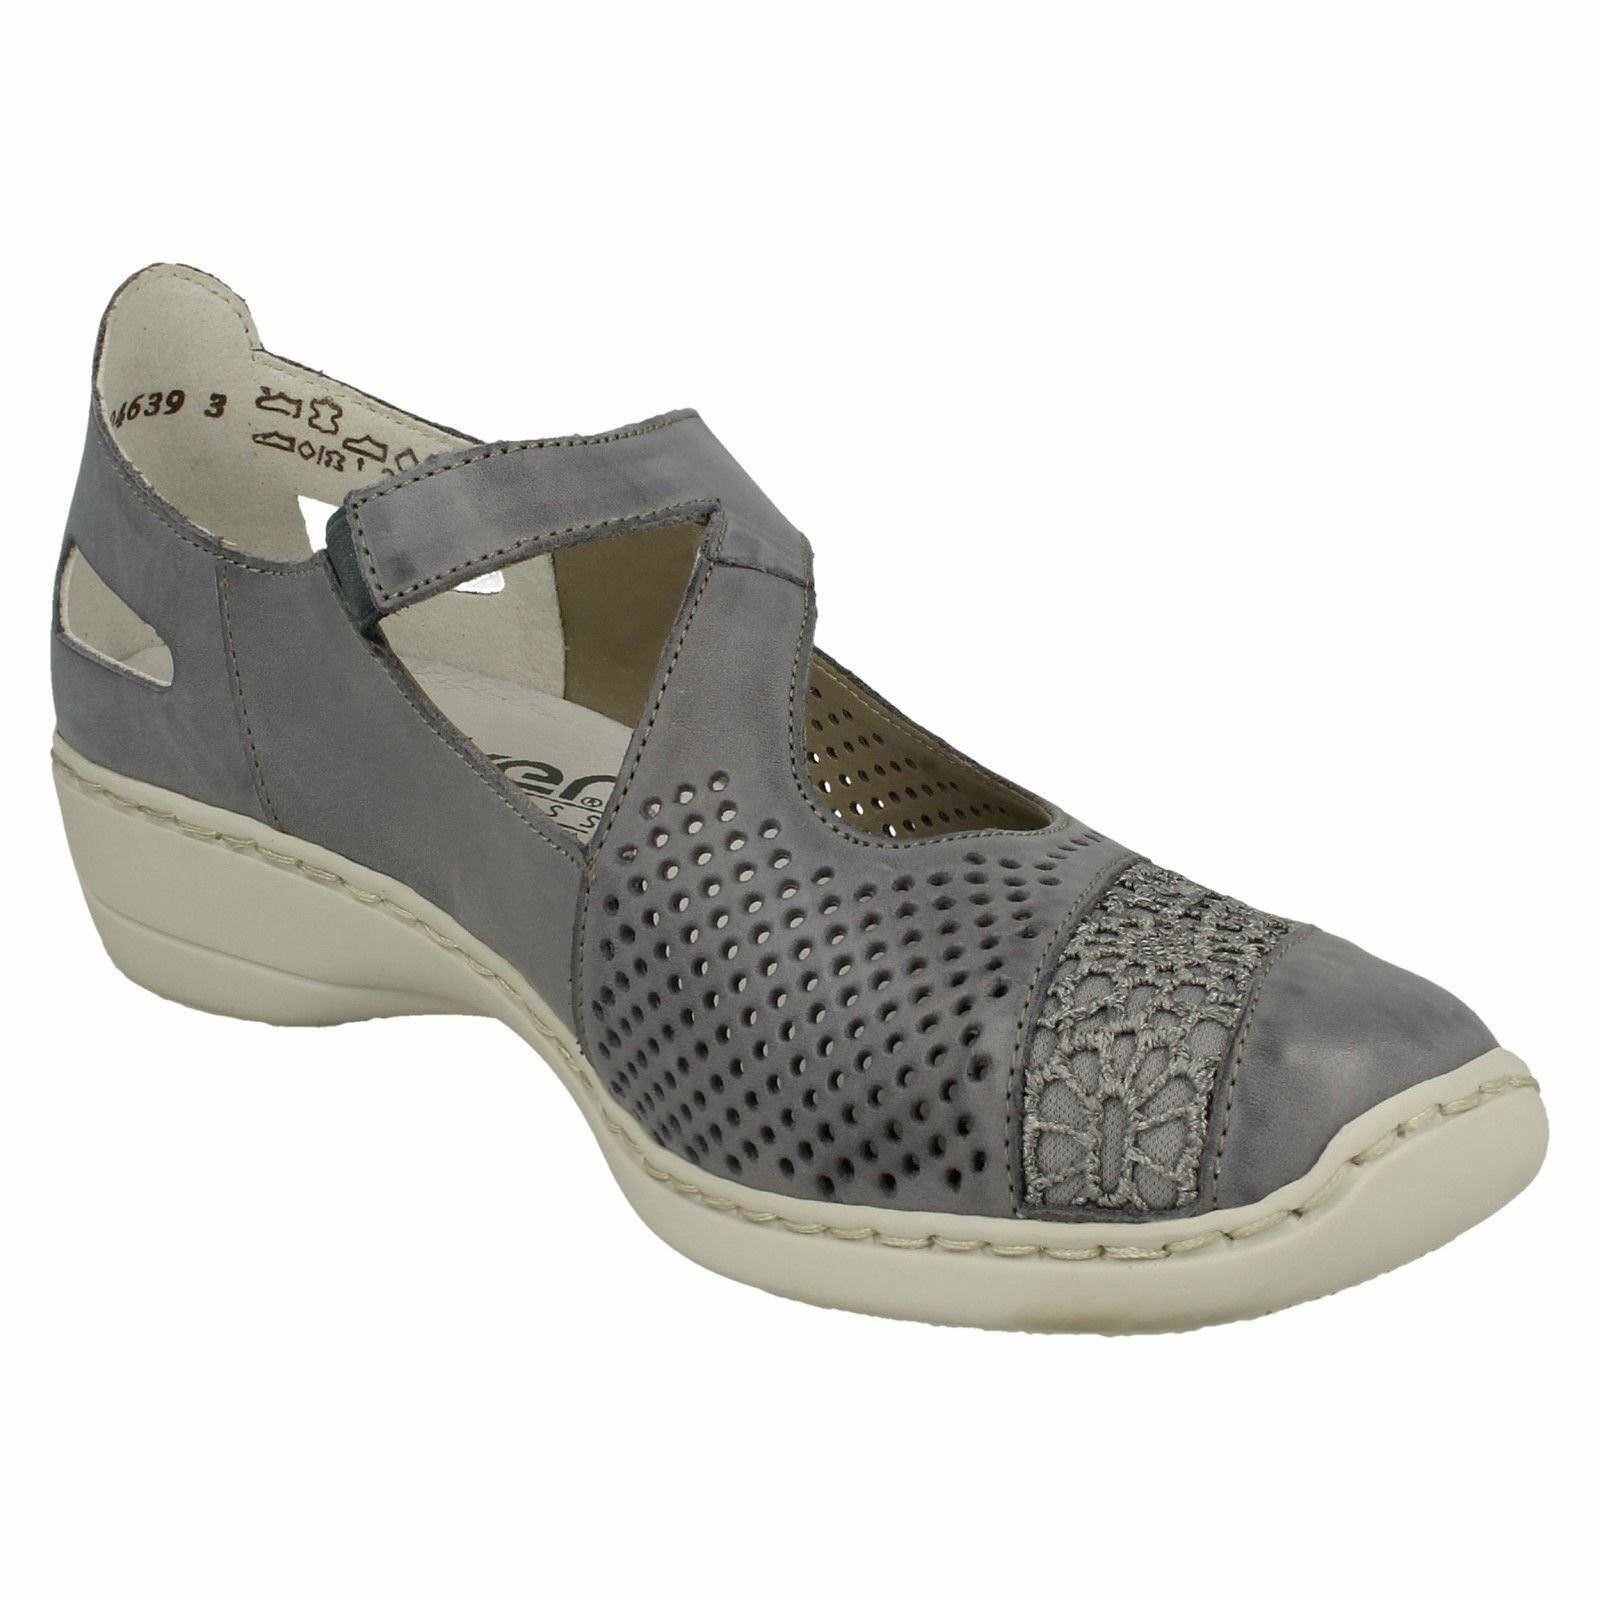 LADIES RIEKER RIEKER RIEKER 41346 Blau LEATHER MARY JANE CASUAL EVERYDAY BAR FLAT Schuhe SIZE c4968f